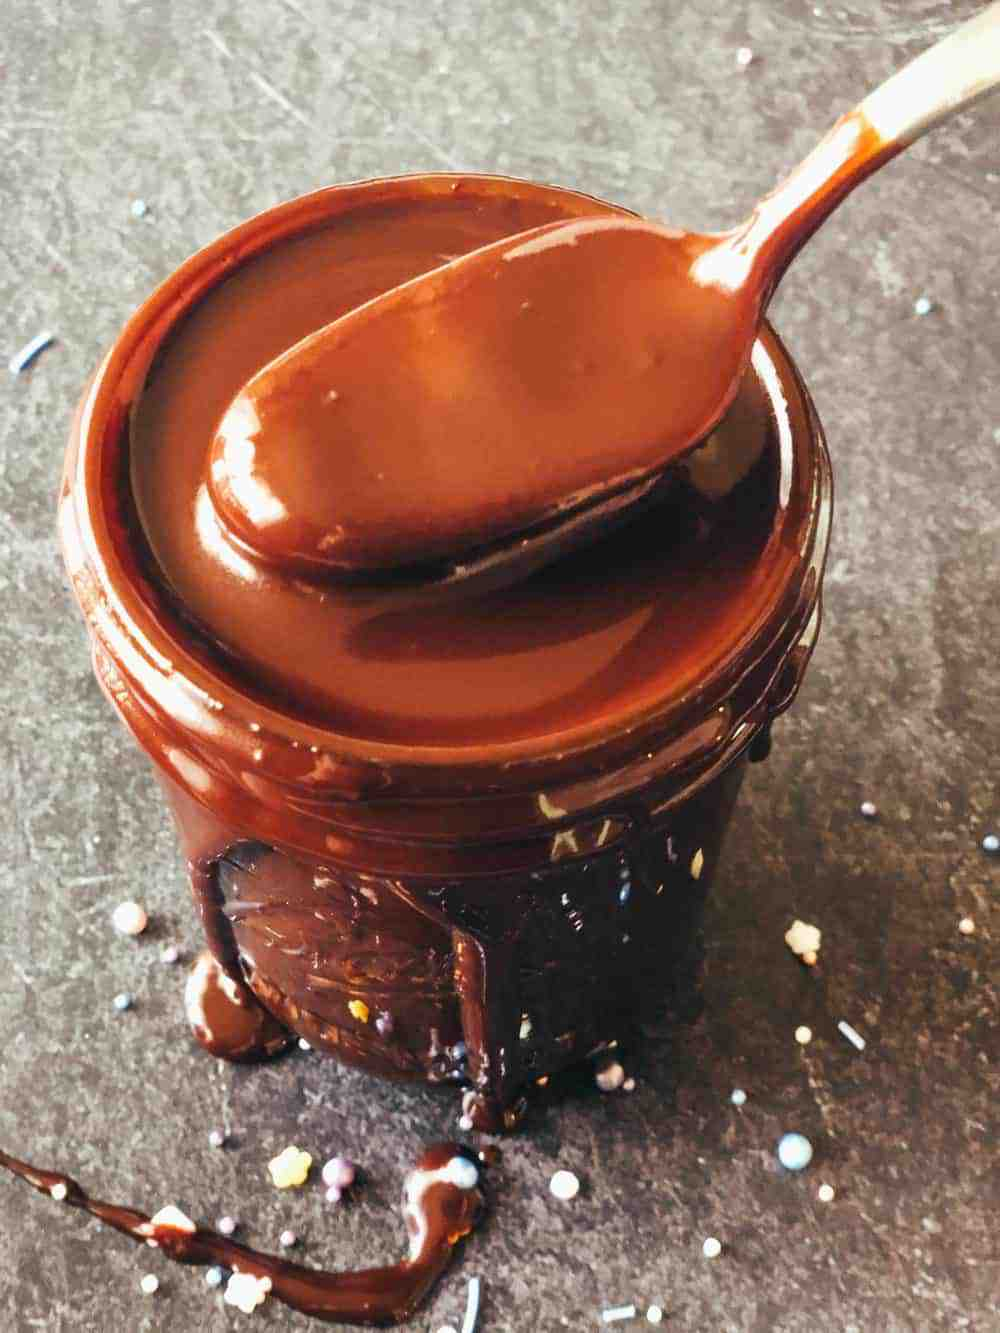 spoon dipping out portion of chocolate sauce